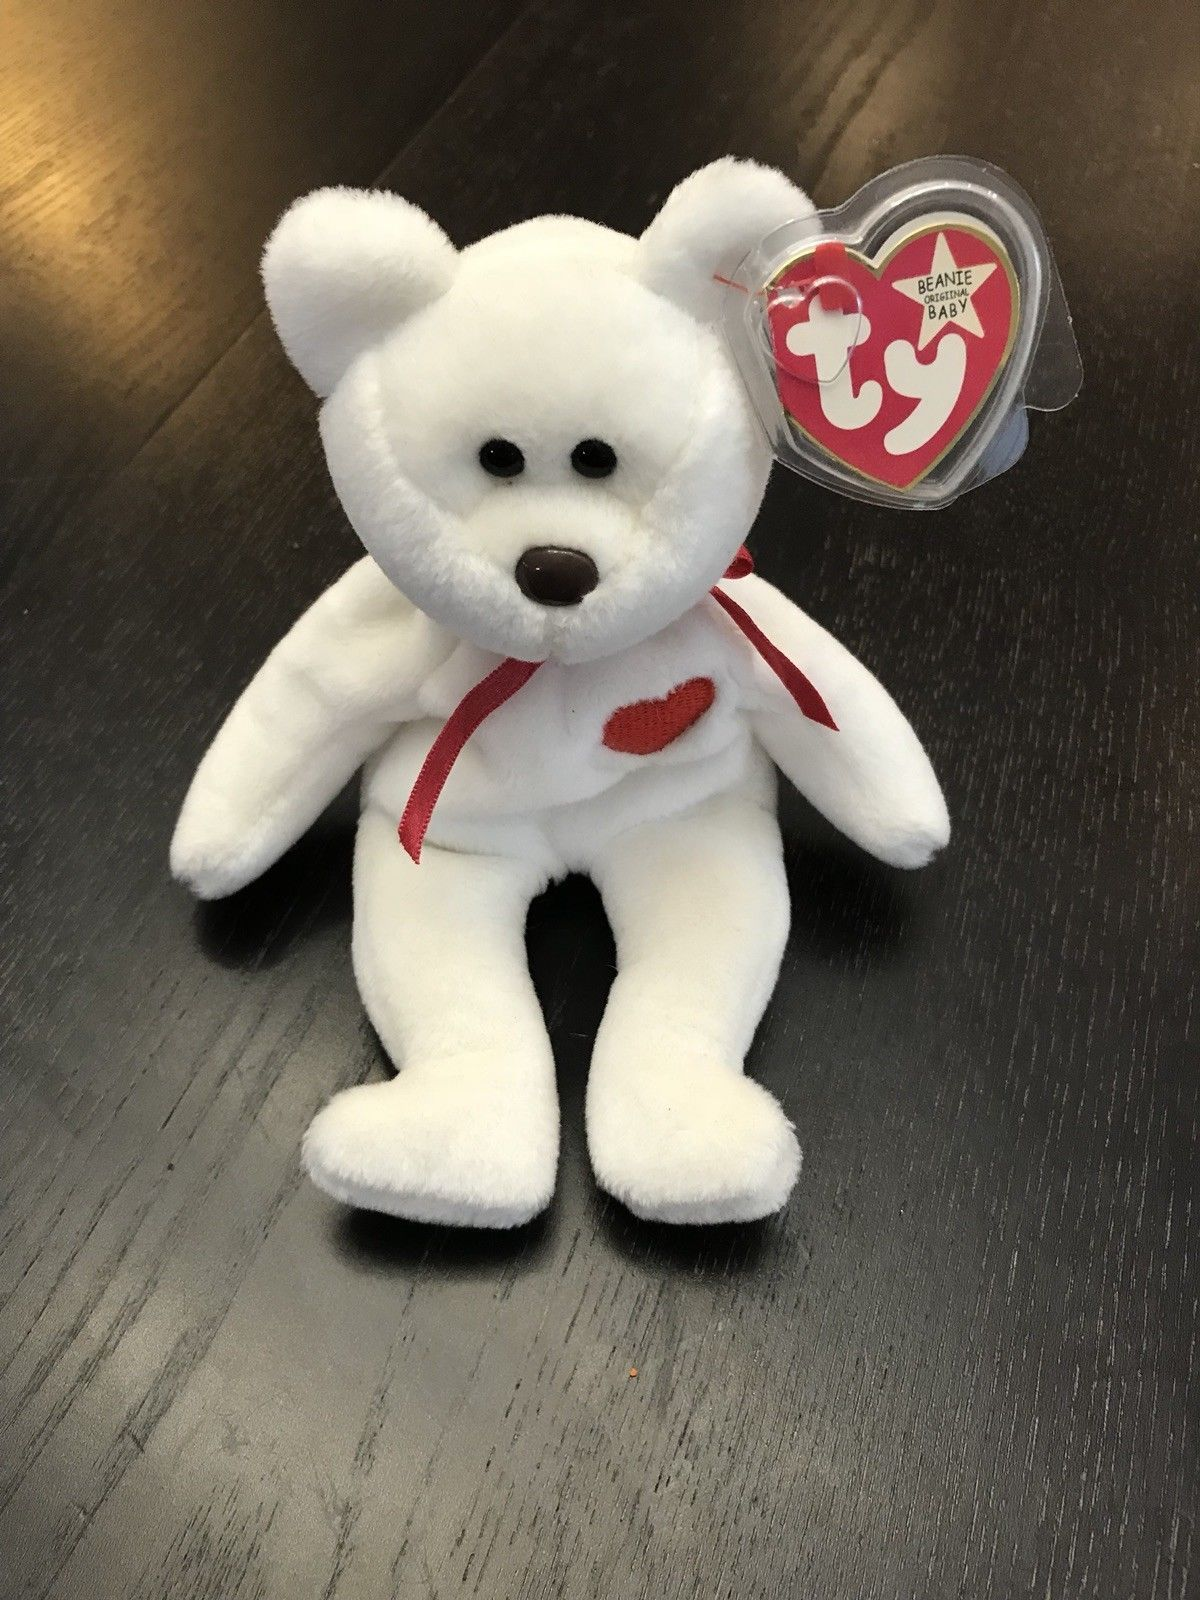 ab6edd5eb36 The 20 Expensive Collectible Beanie Babies Will Make You Rich - Most  Valuable Beanie Babies